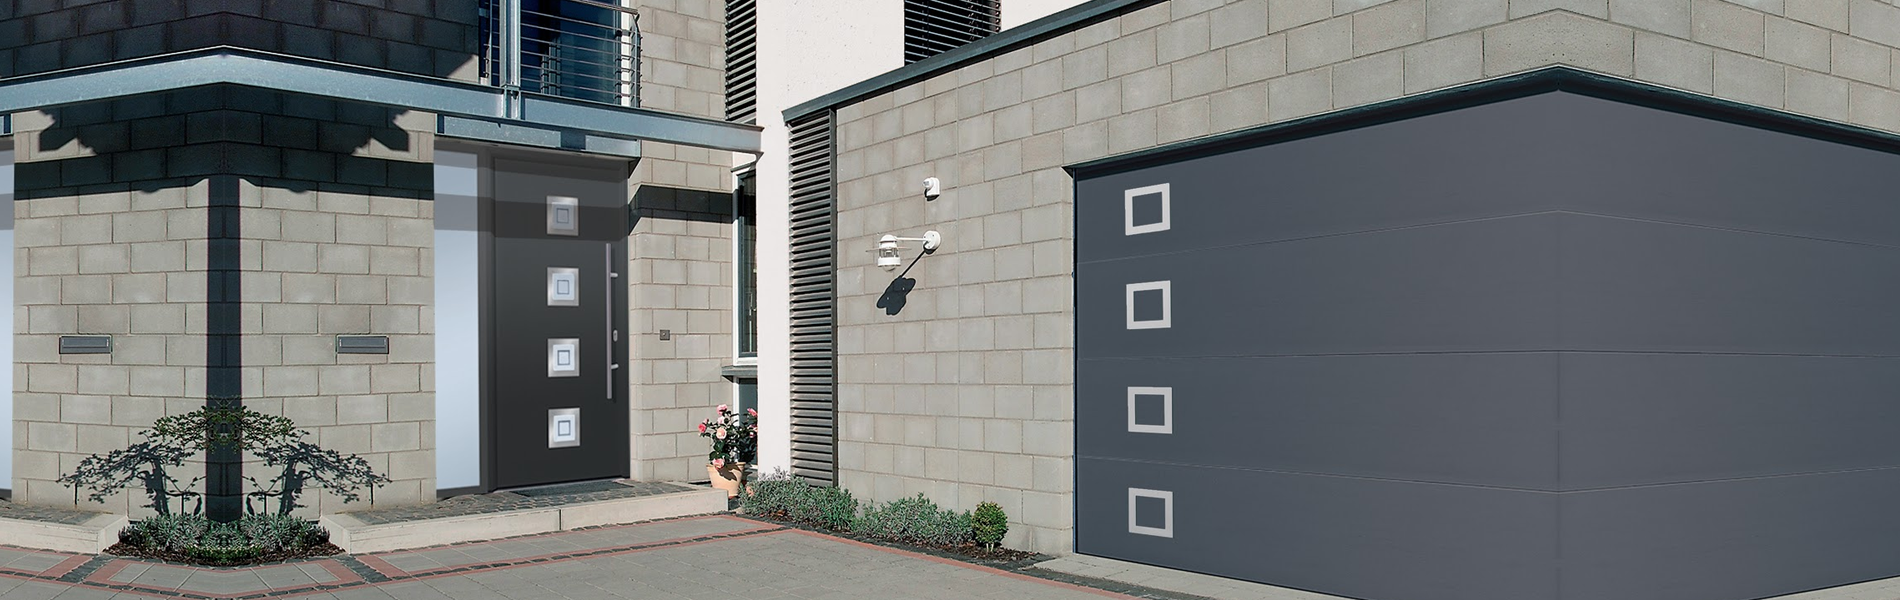 Interstate Garage Doors Washington, DC 202-751-2215